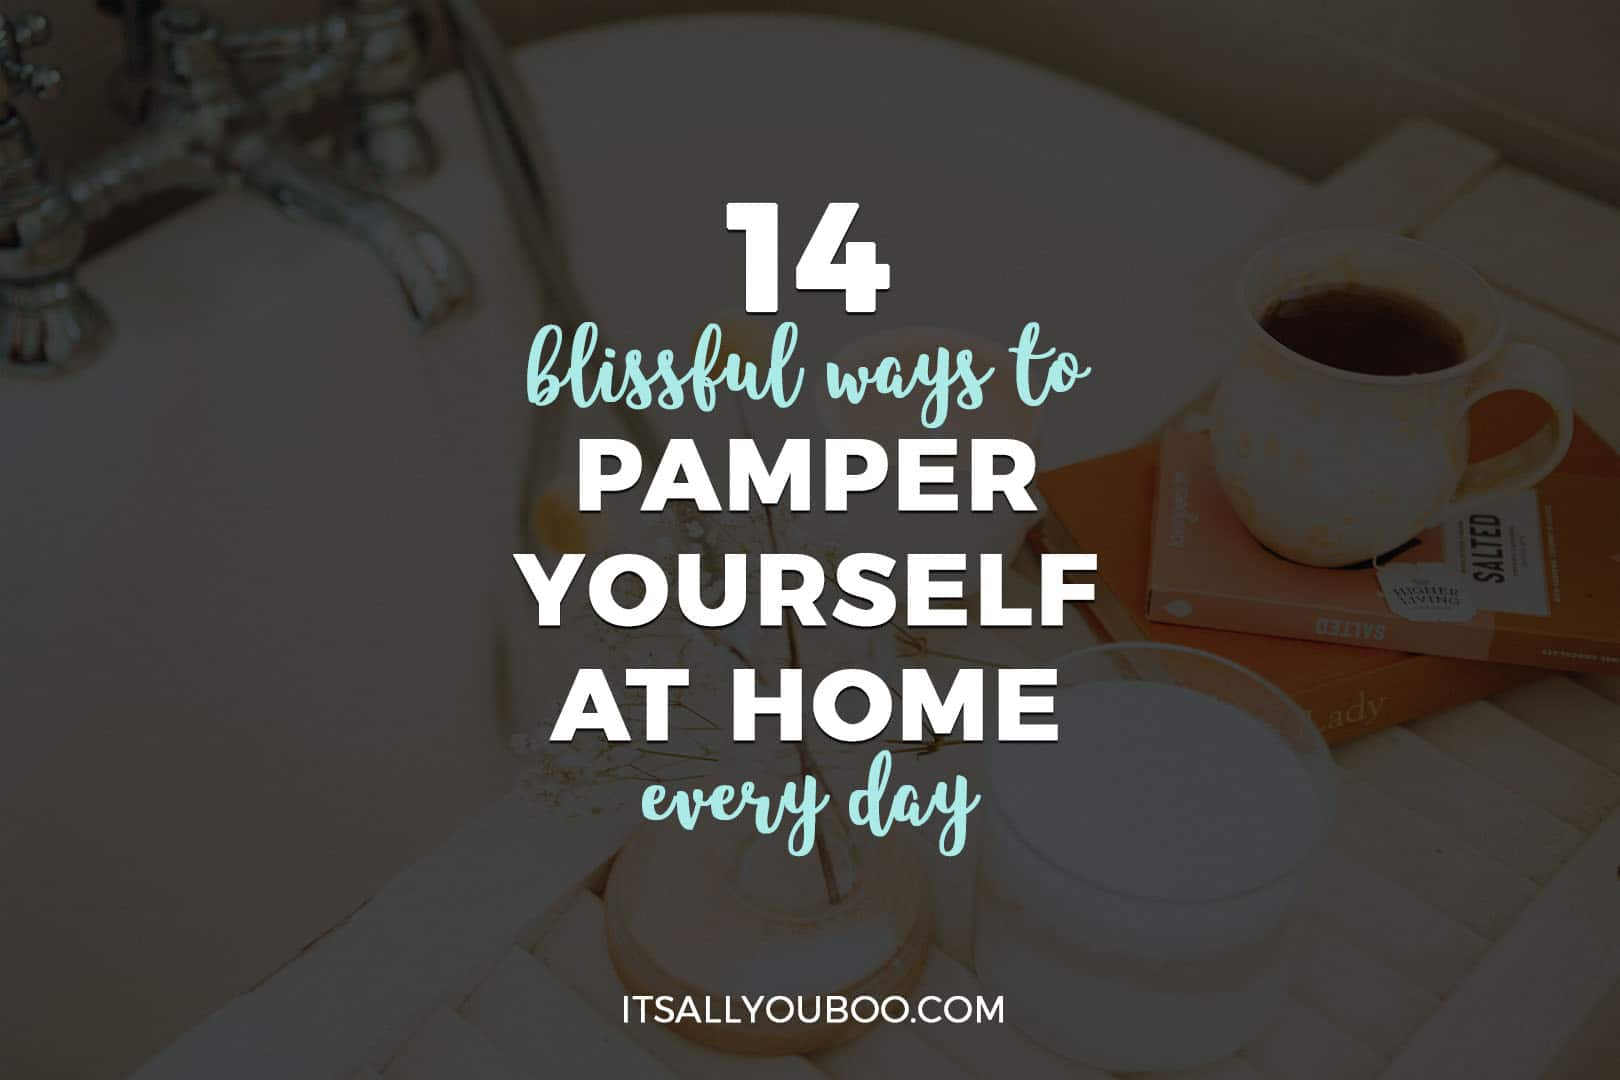 14 Blissful Ways to Pamper Yourself at Home Every Day